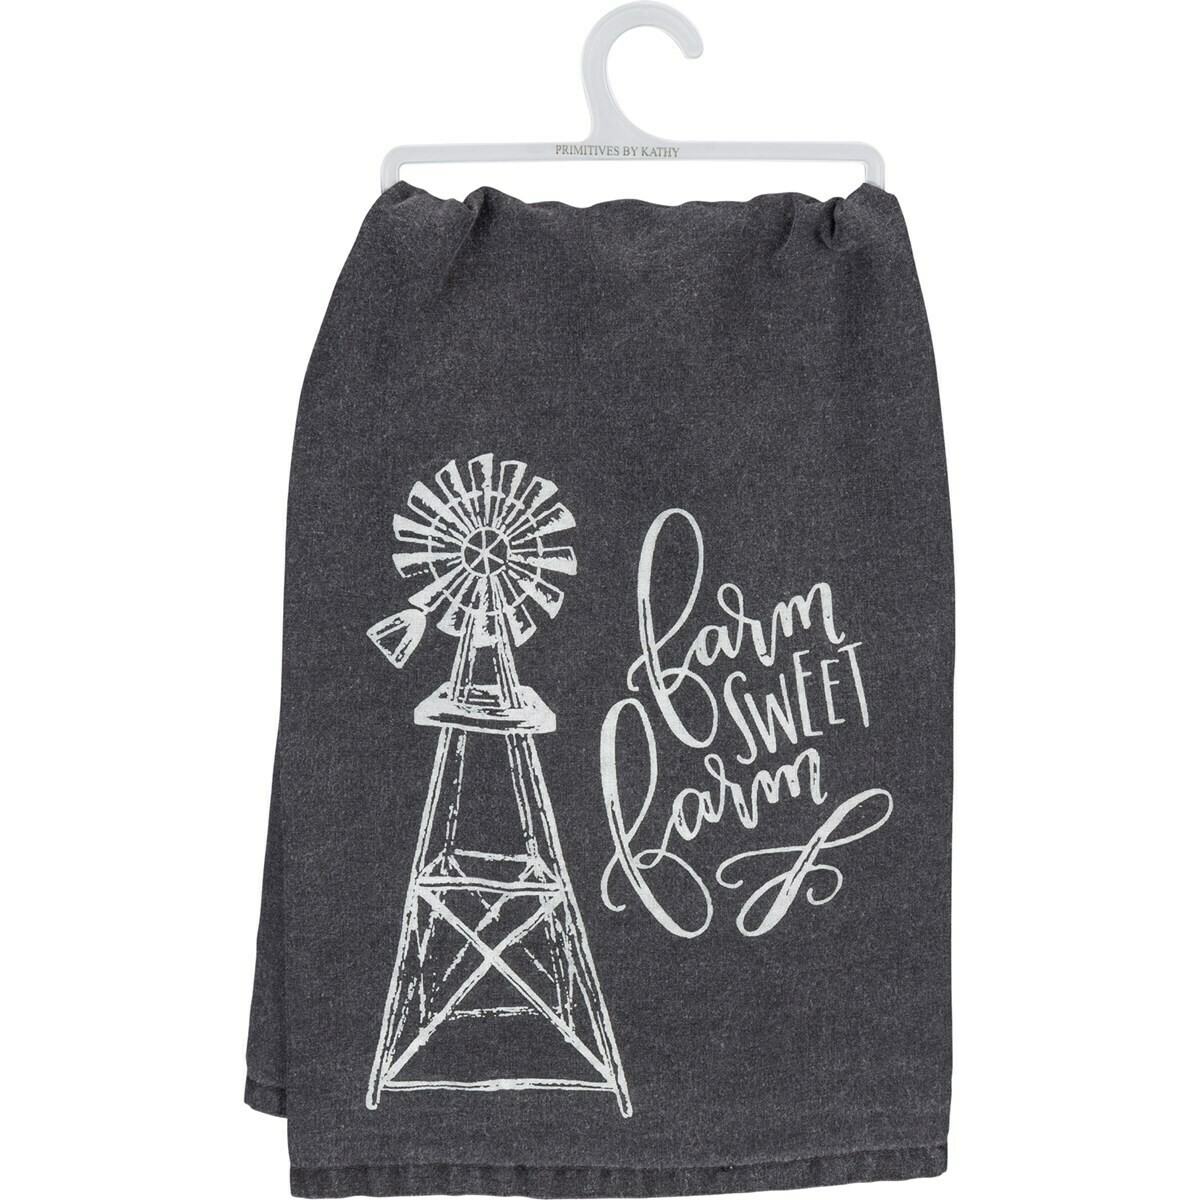 Dish Towel; Farm Sweet Farm